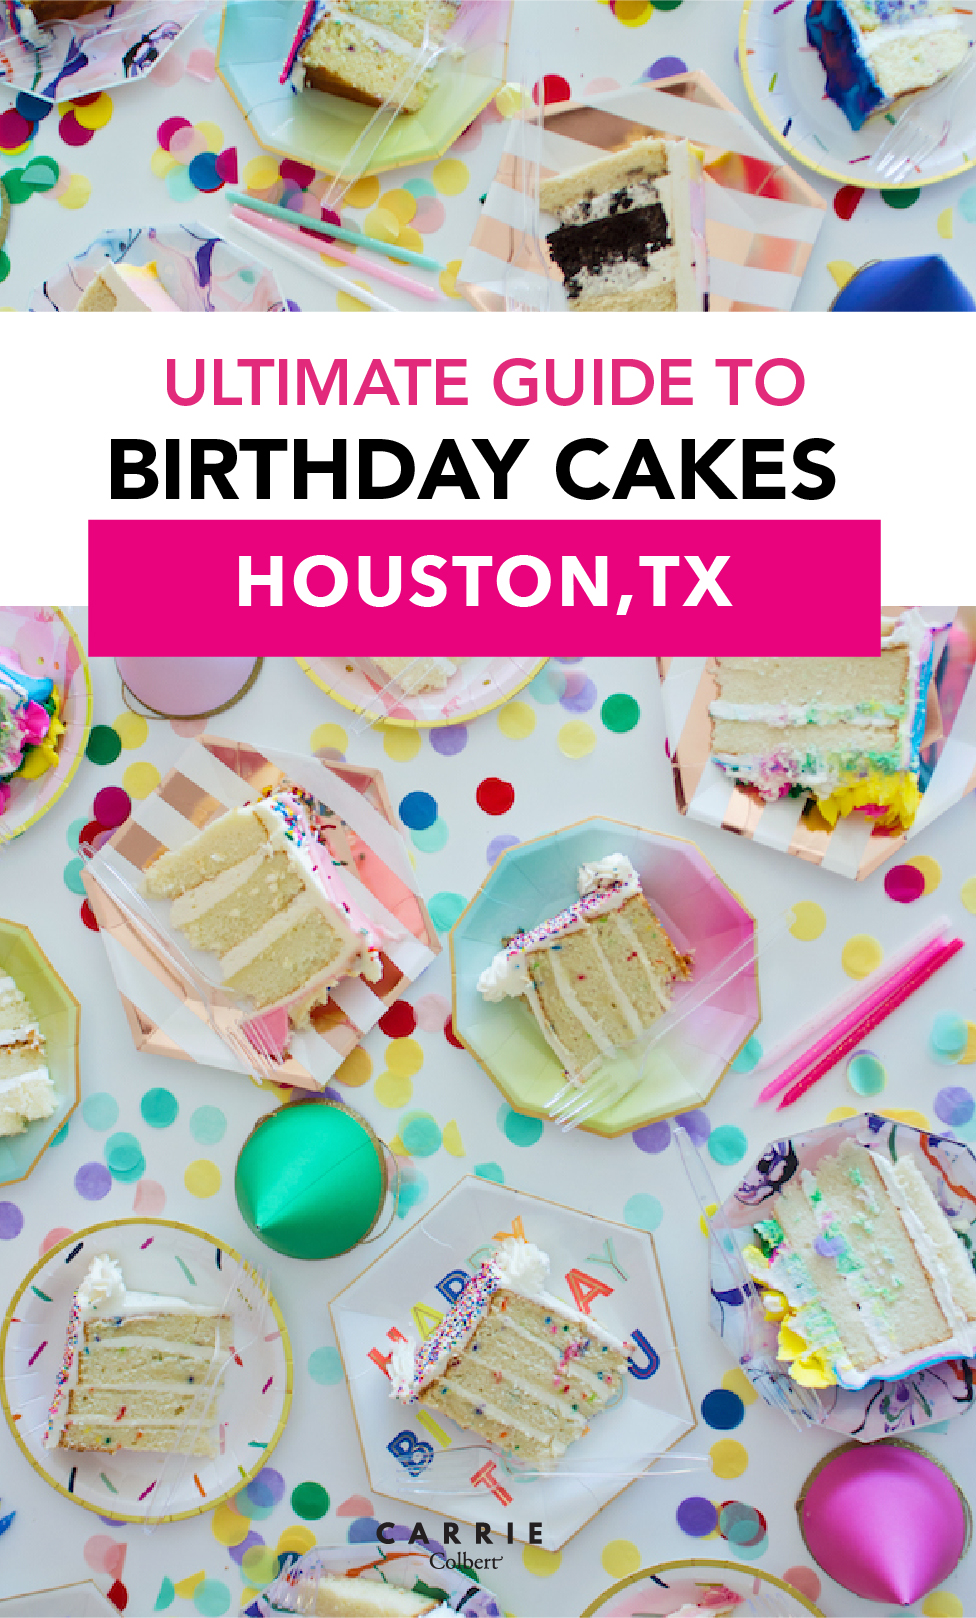 Your Guide To The Very Best Birthday Cakes In Houston